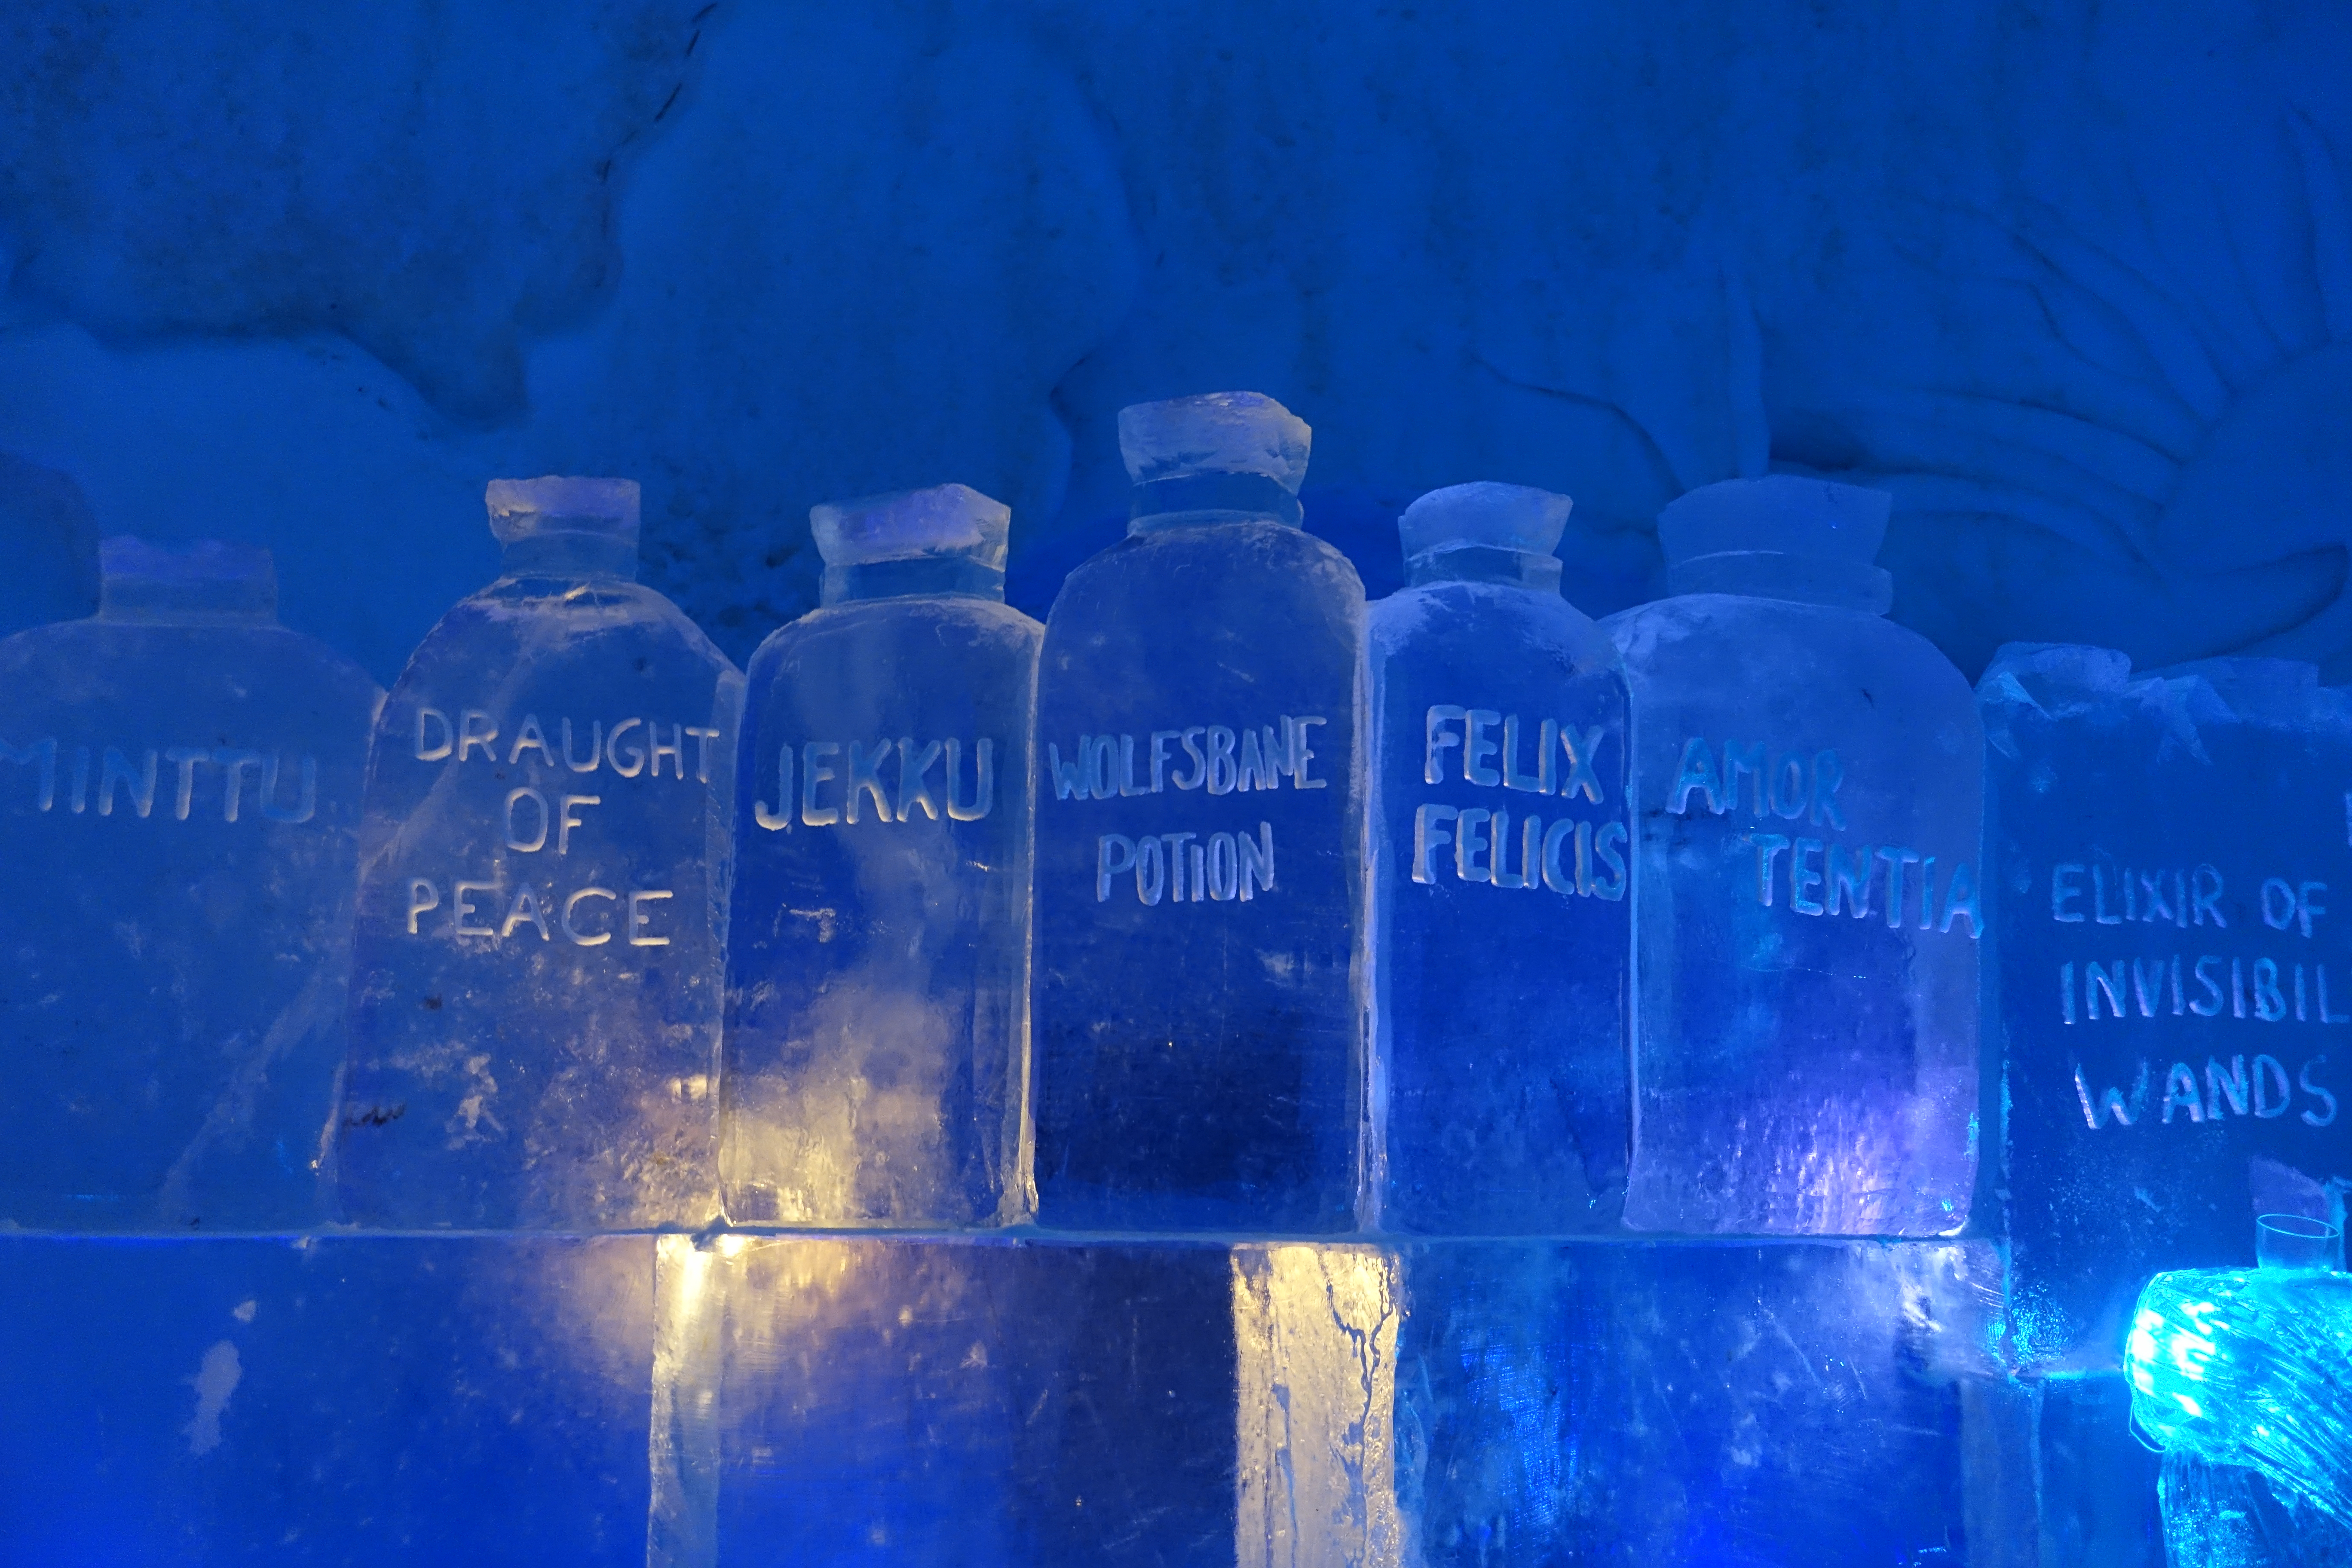 Here is another photo of the potions on display in the Ice Bar from a different angle.